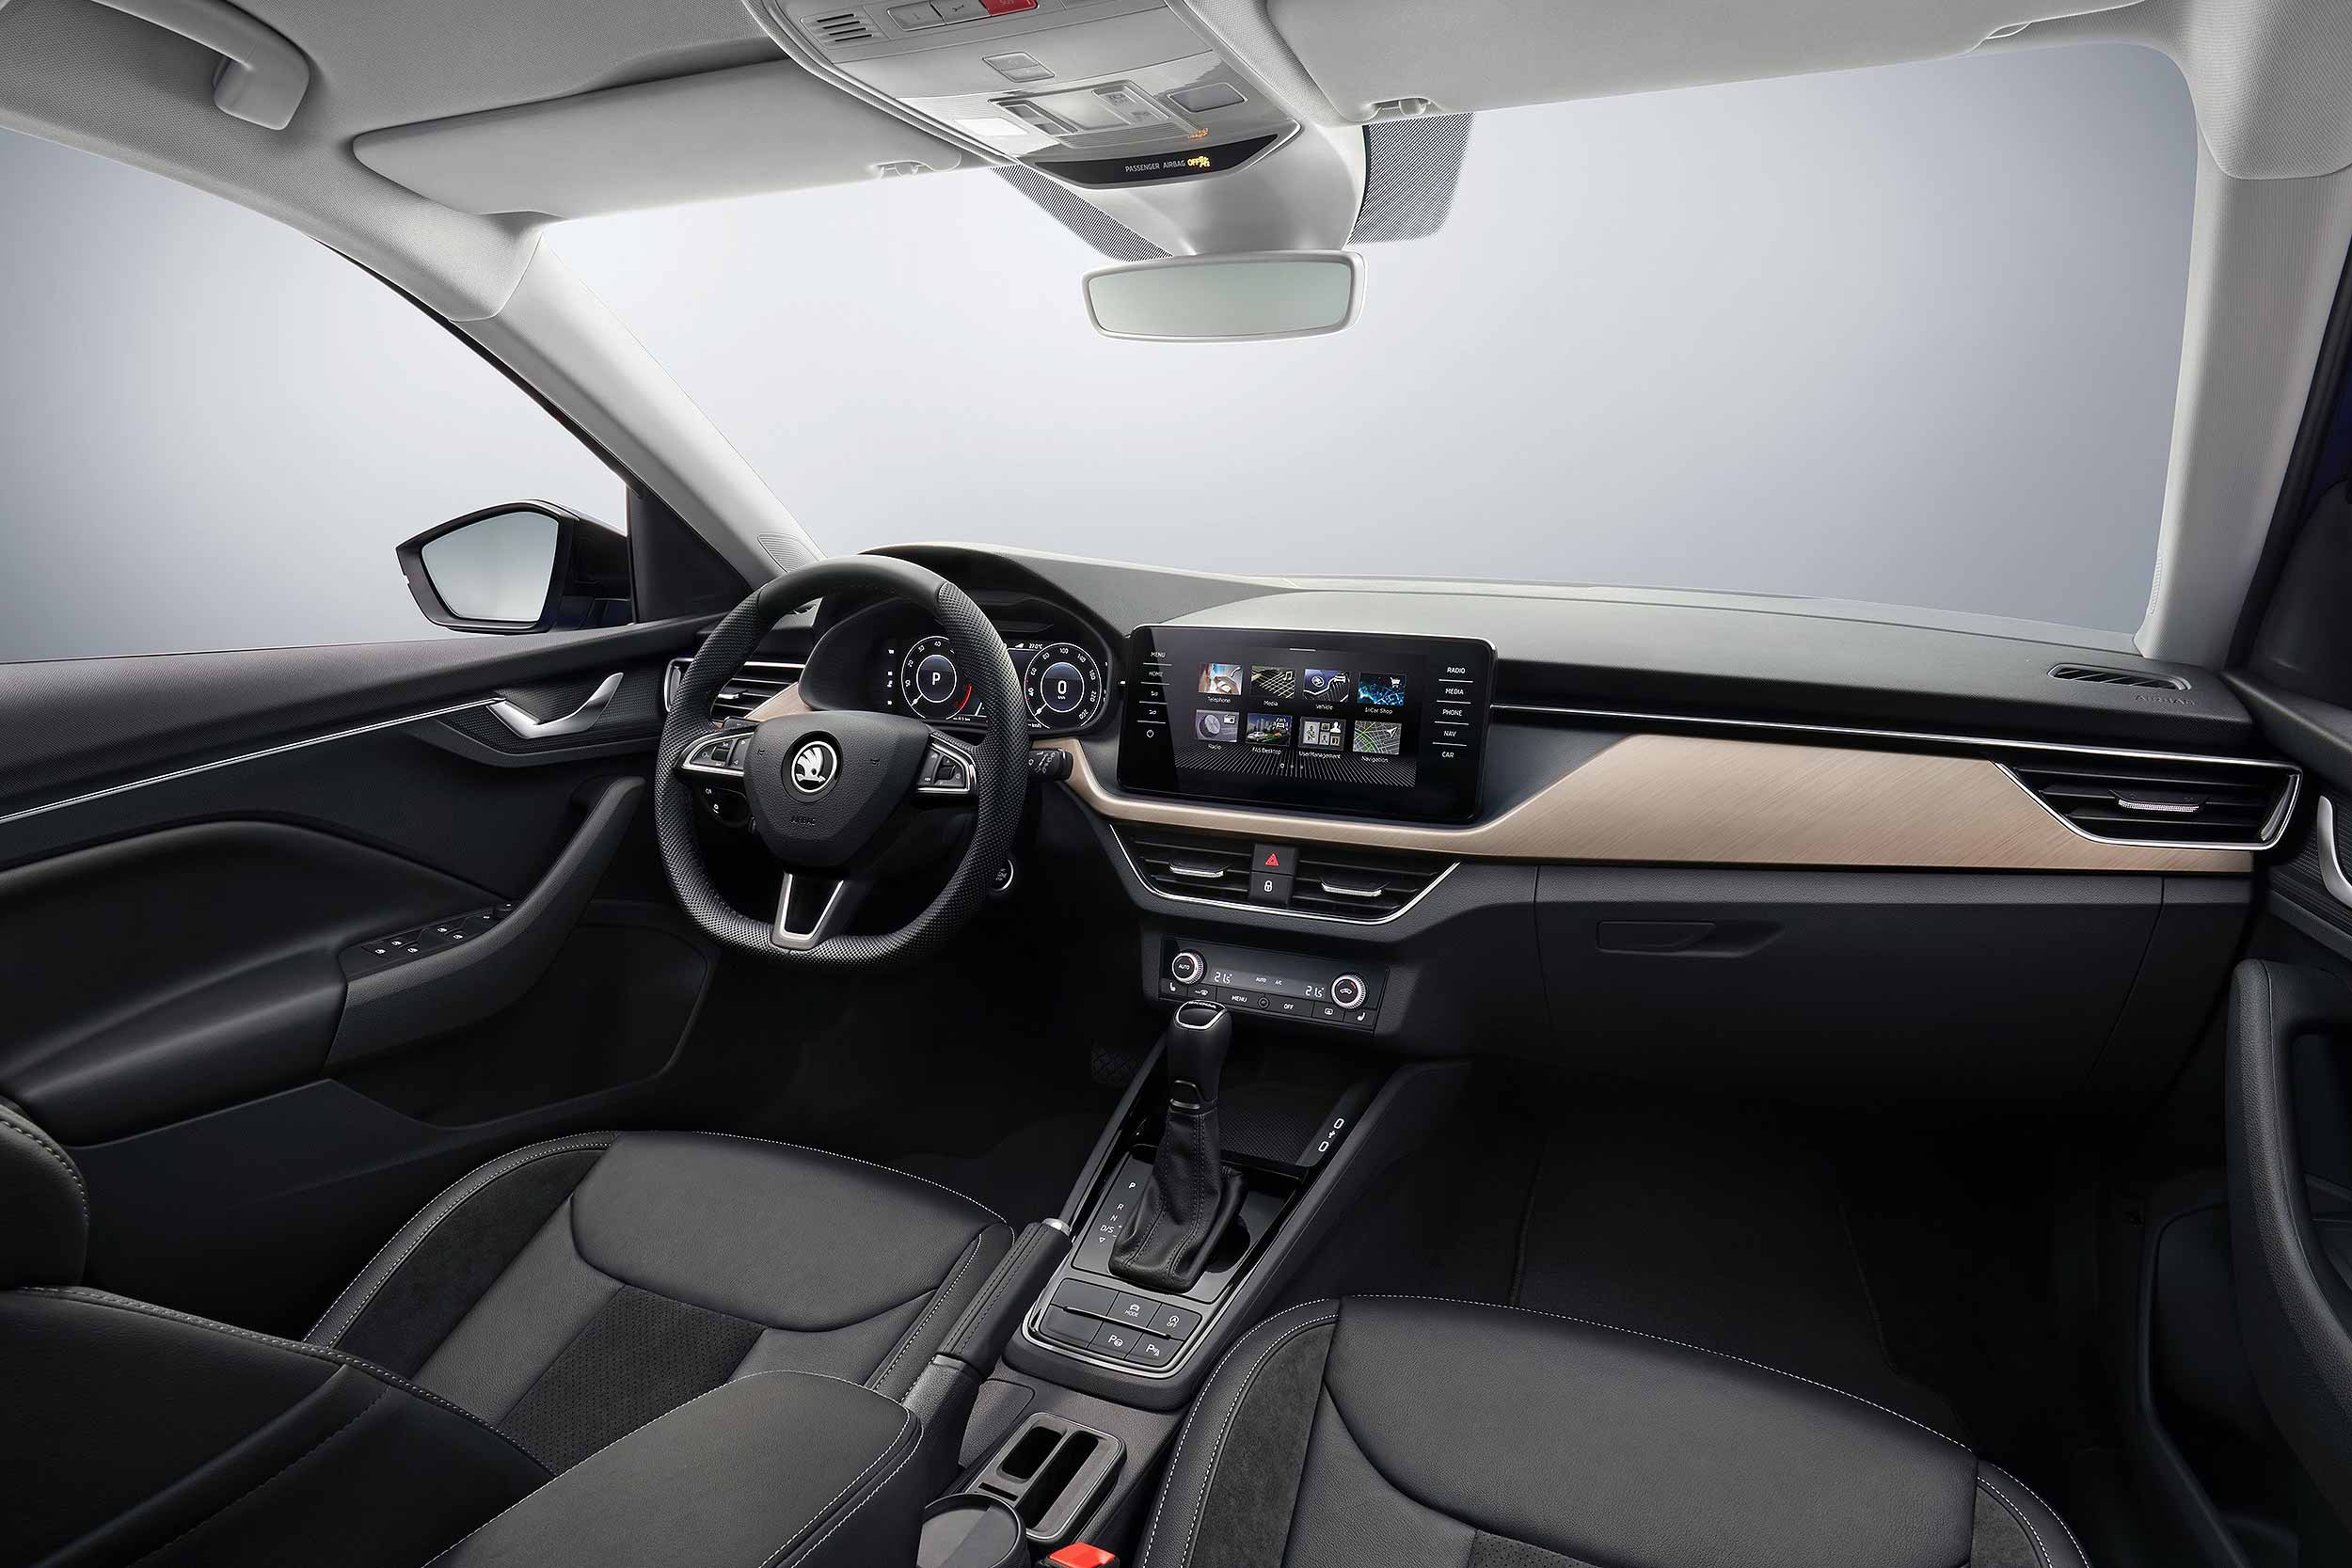 2019 Skoda Scala dashboard